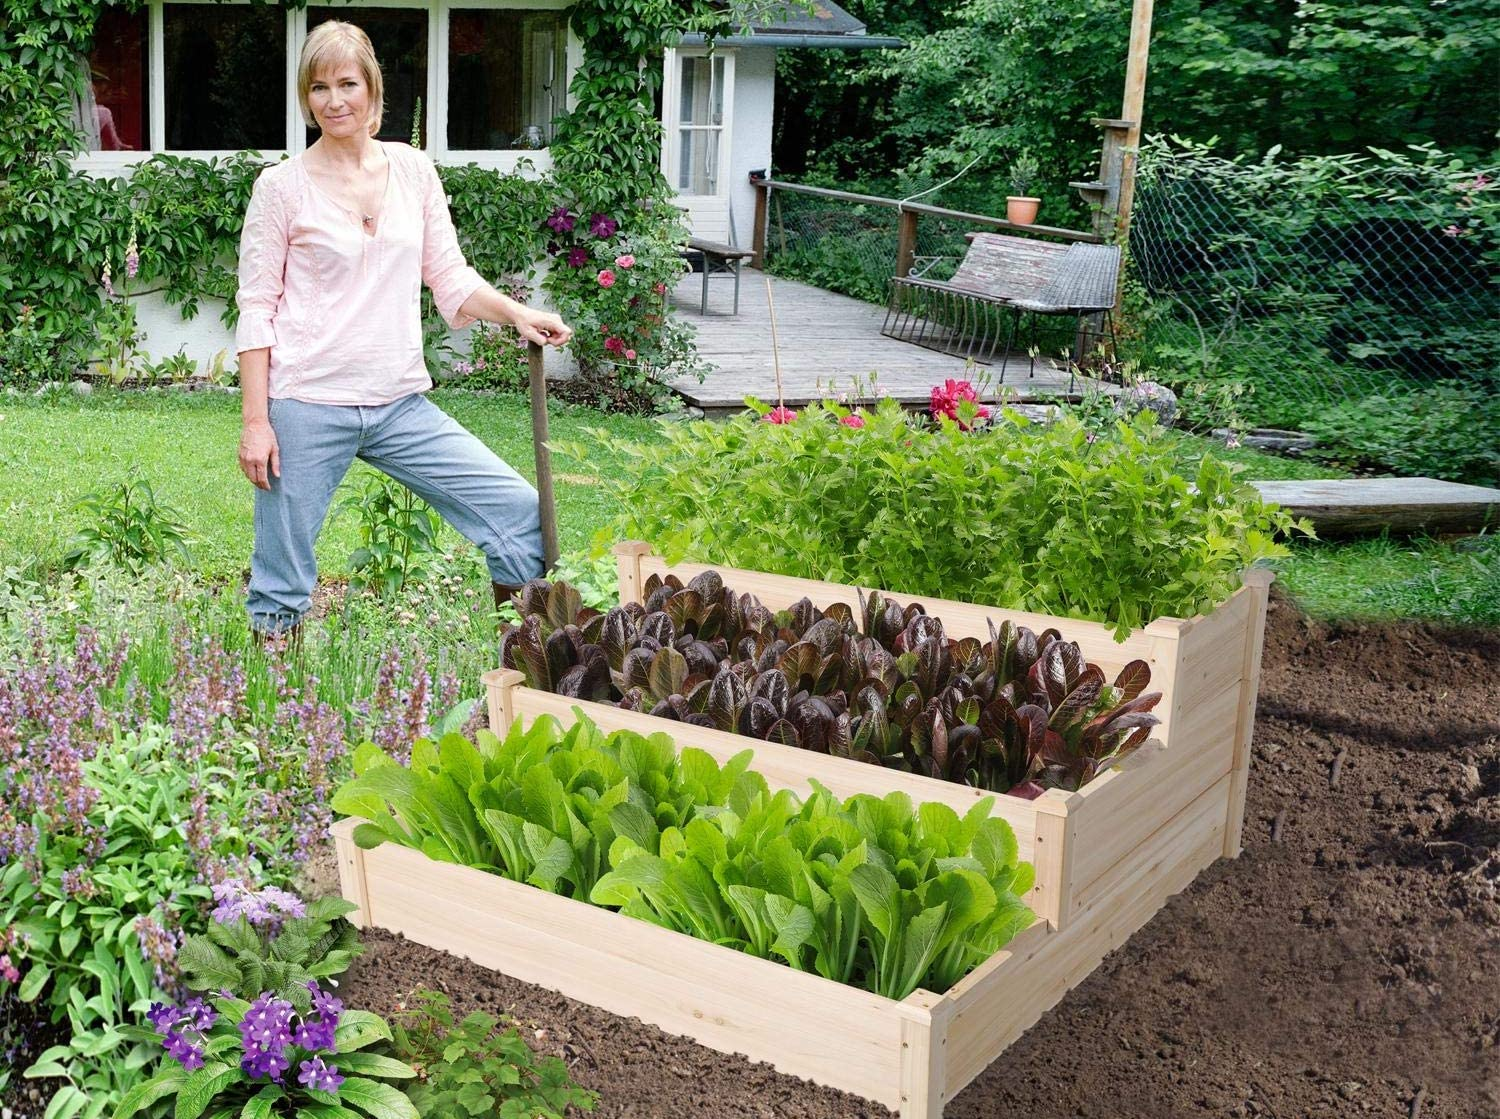 A woman stands next to a three-tiered raised wood garden bed filled with leafy plants